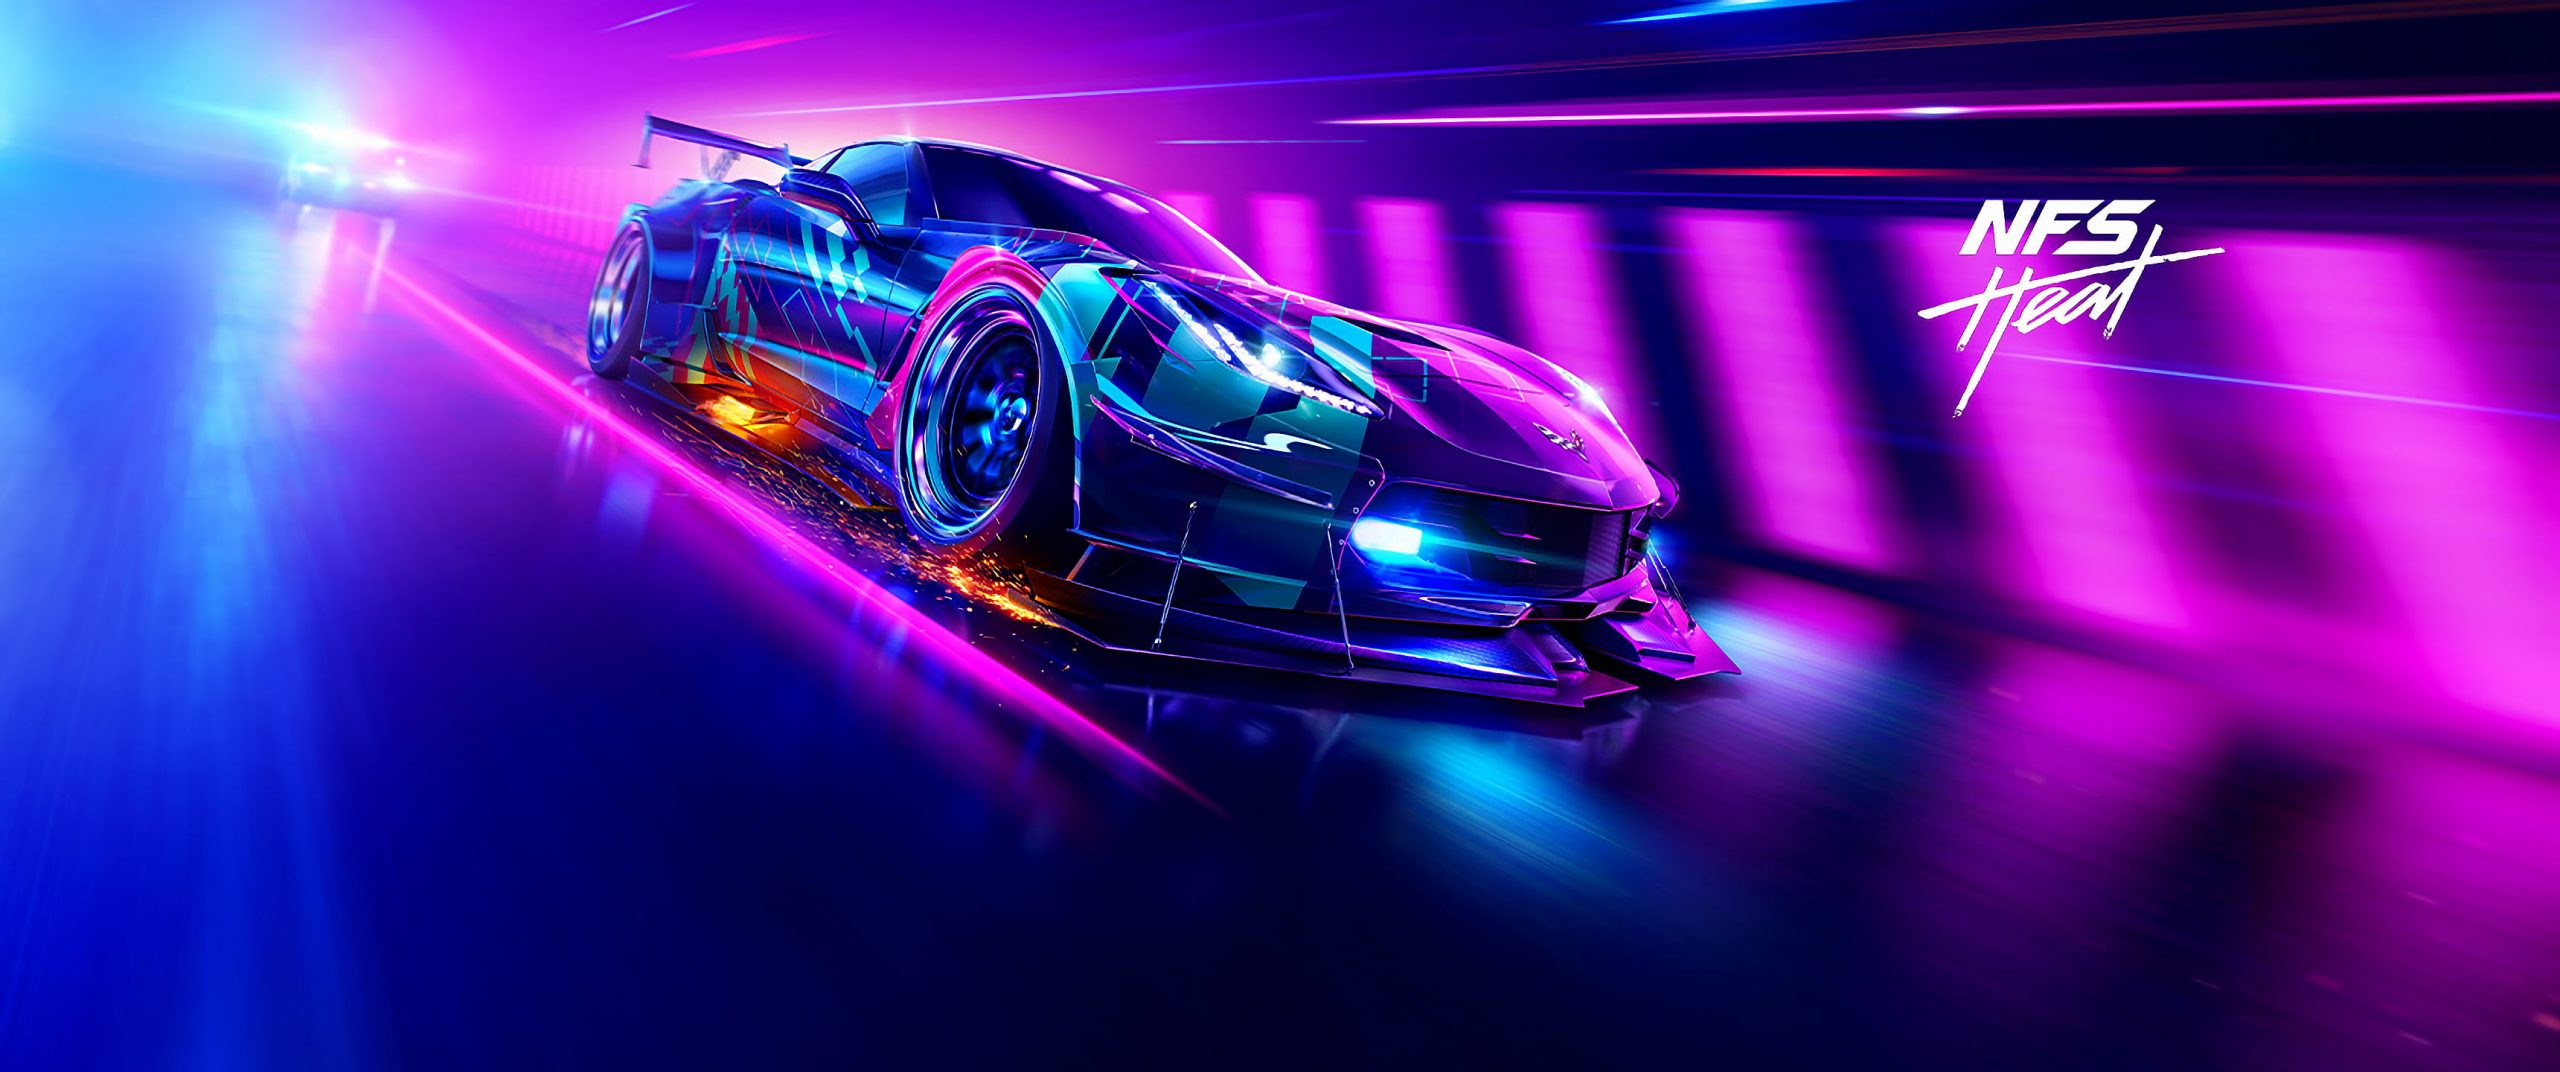 Video Games Video Game Art Ultrawide Ultra Wide Need For Speed Heat Wallpaper For You Hd Wallpaper For Desktop Mobile